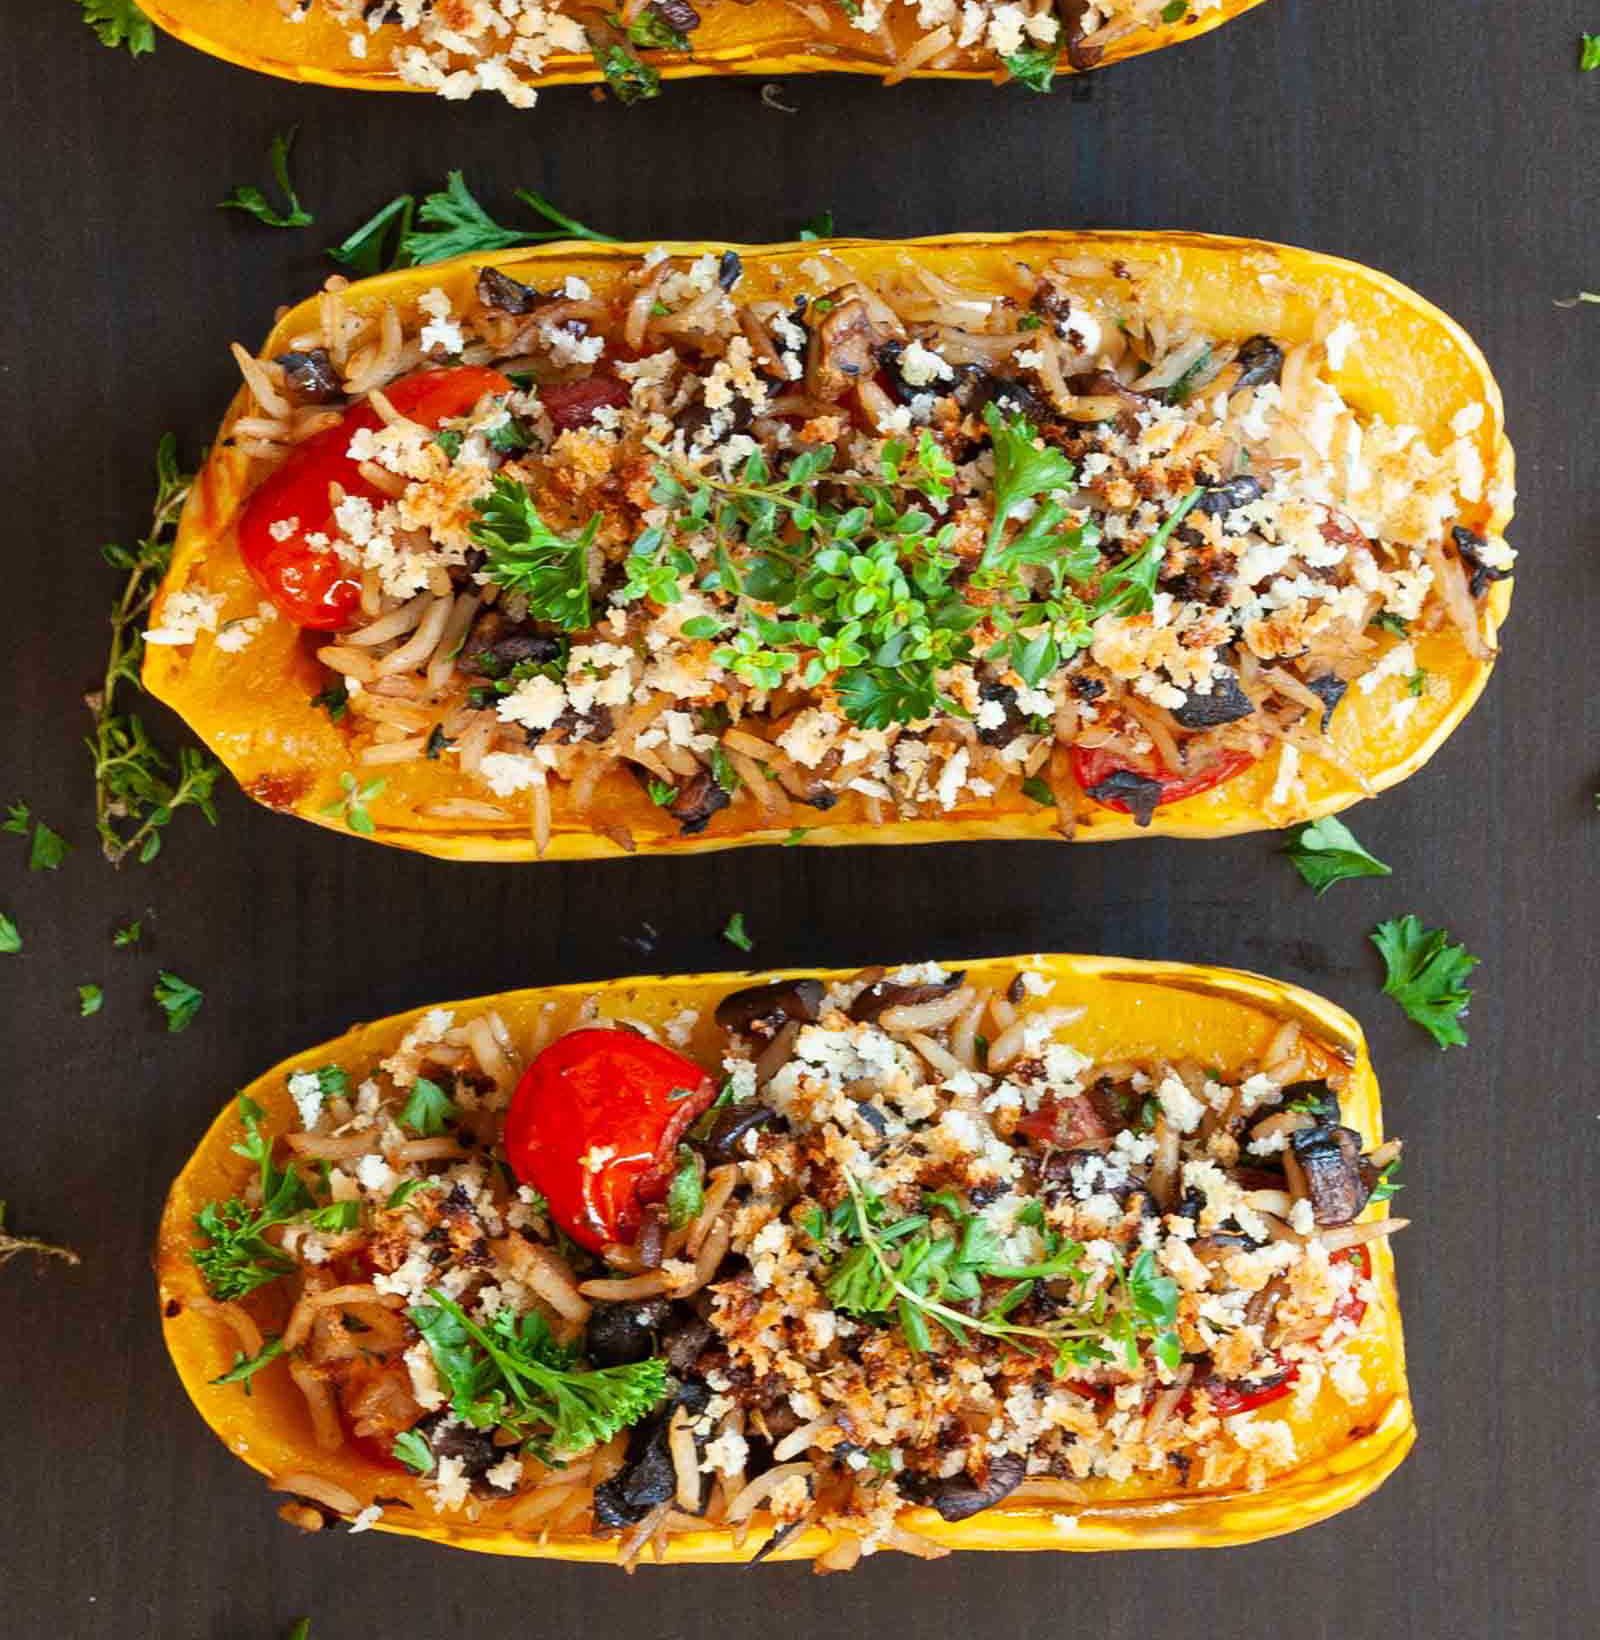 Stuffed Delicata Squash with Goat and Cheese by Dapur Sinolin